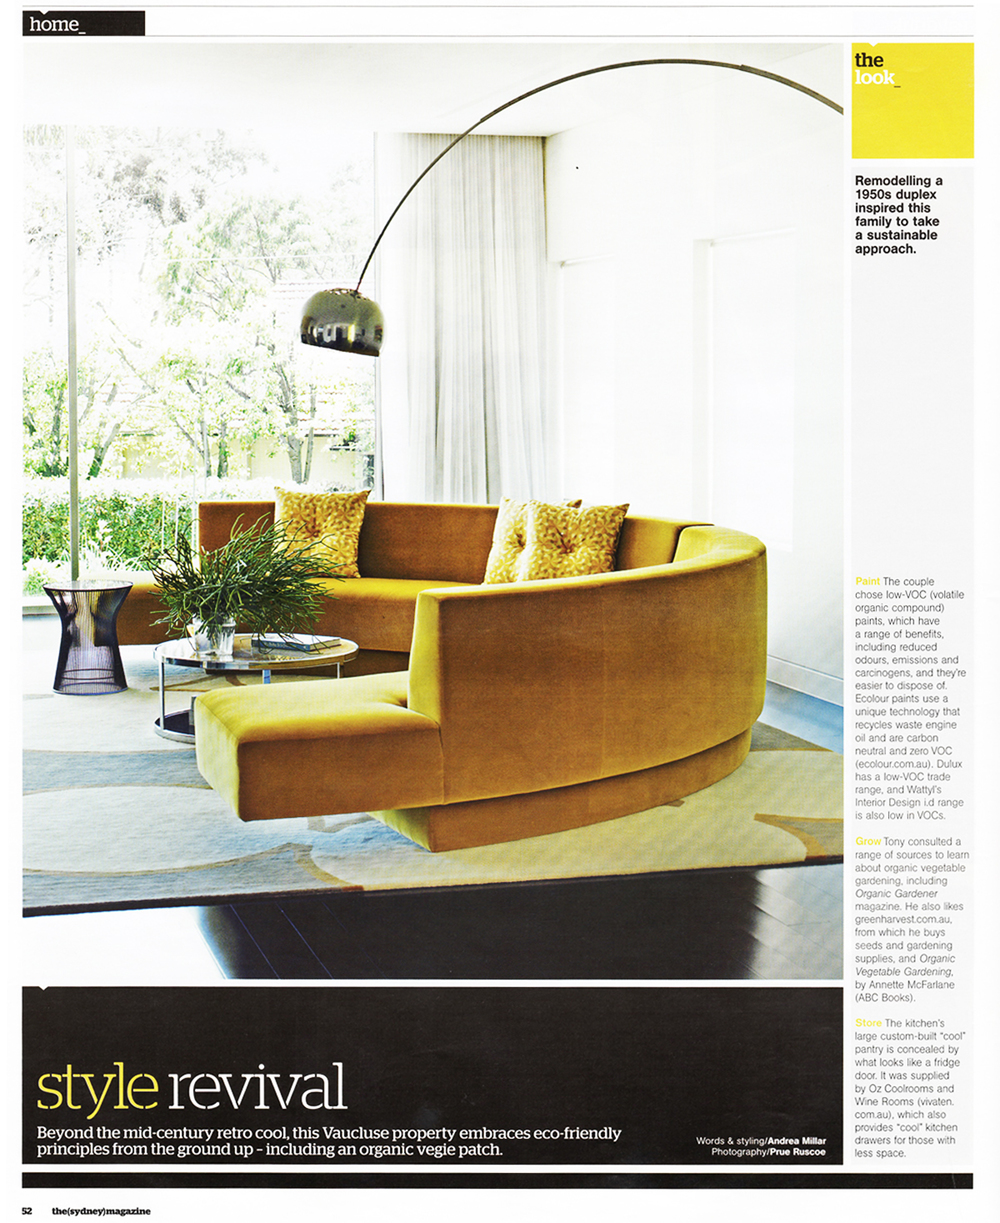 the (sydney) magazine June 2012 (Vaucluse) p1 web.jpg